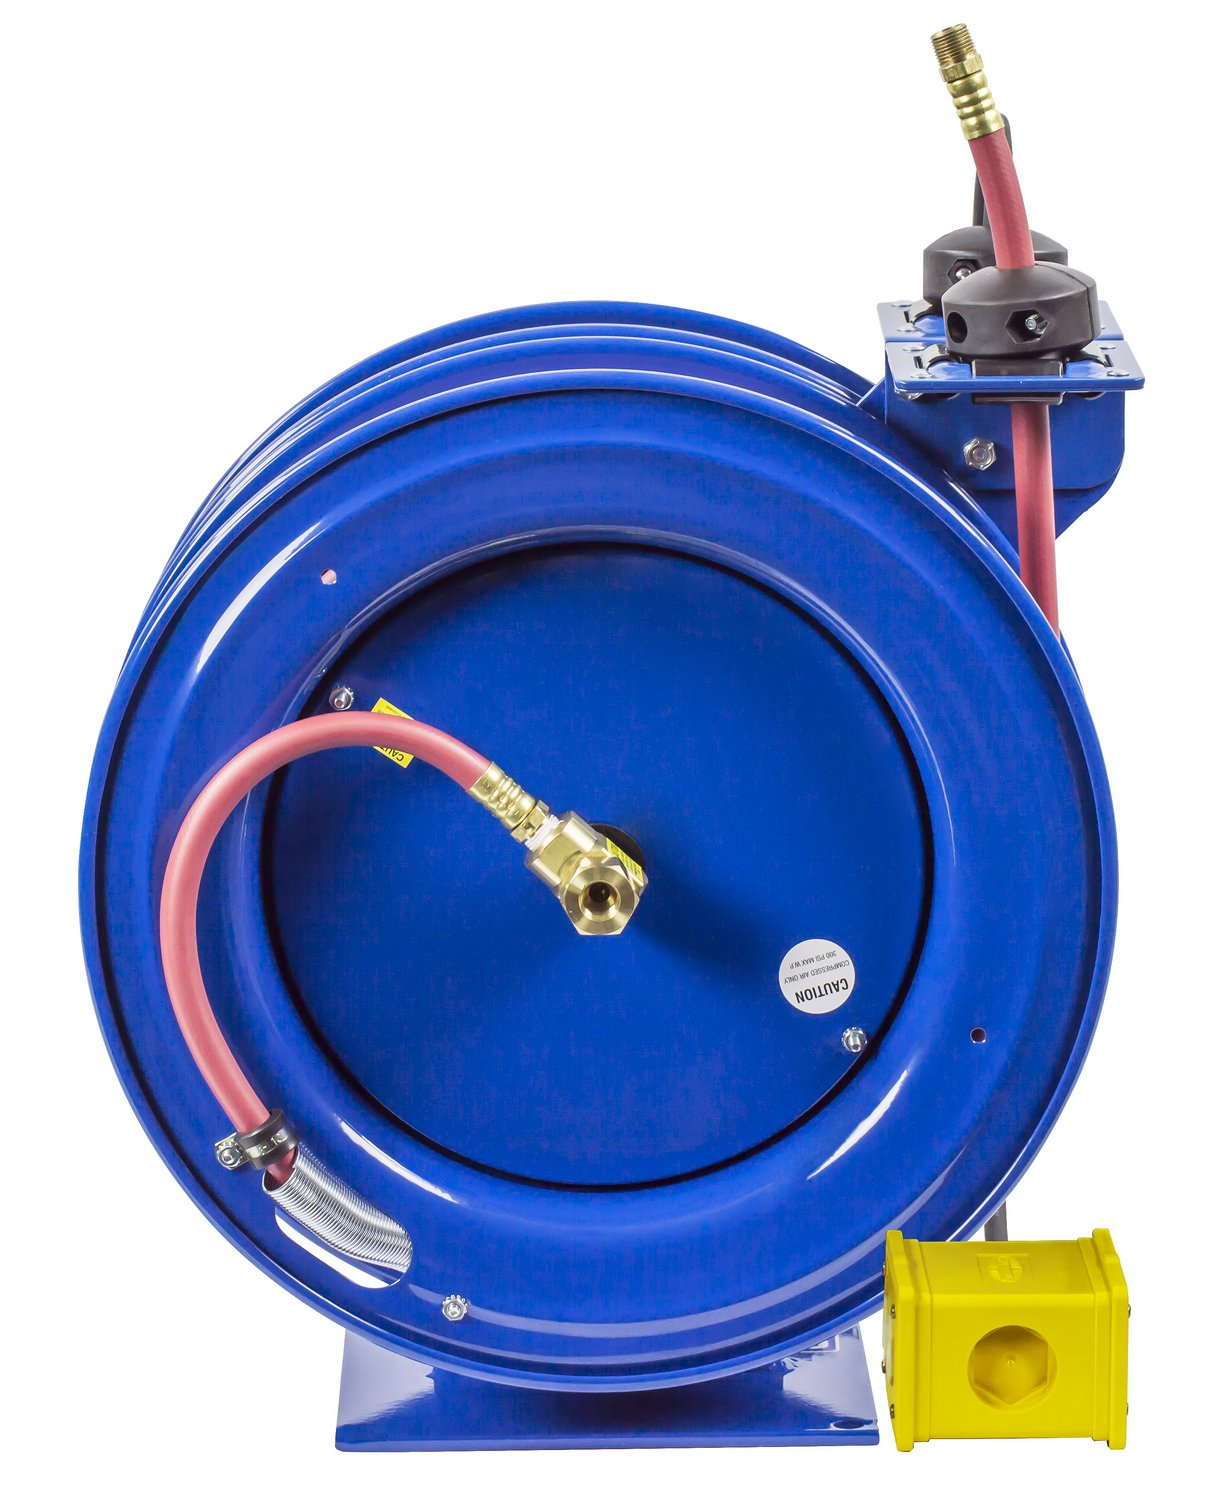 Coxreels C-L350-5012-B Combo Air and Electric Hose Reel with Quad Outlet Attachment, 3/8'' Hose ID, 50' Length by Coxreels (Image #3)